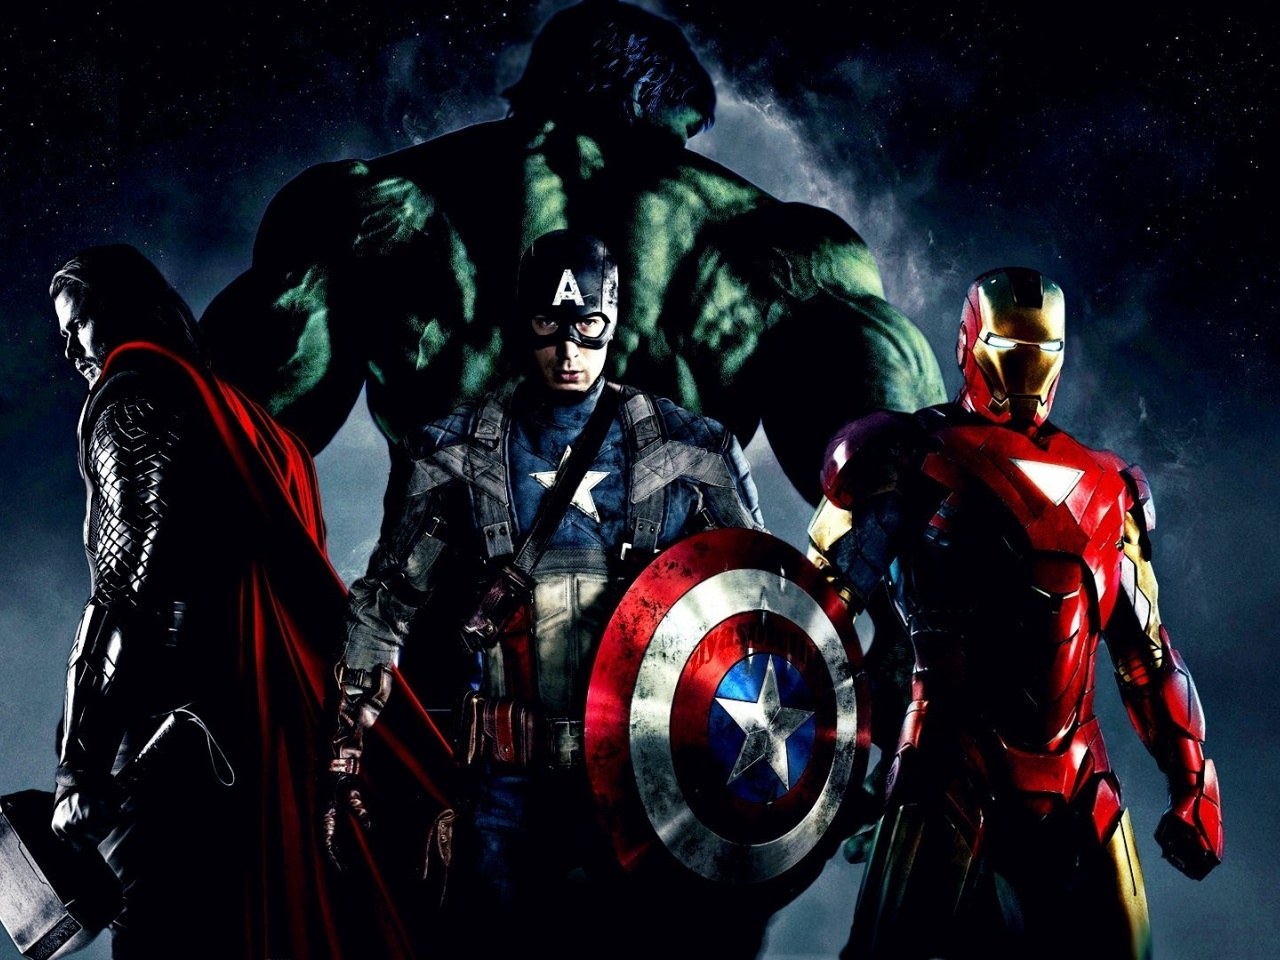 1280x720 Iron Man, movie, avengers